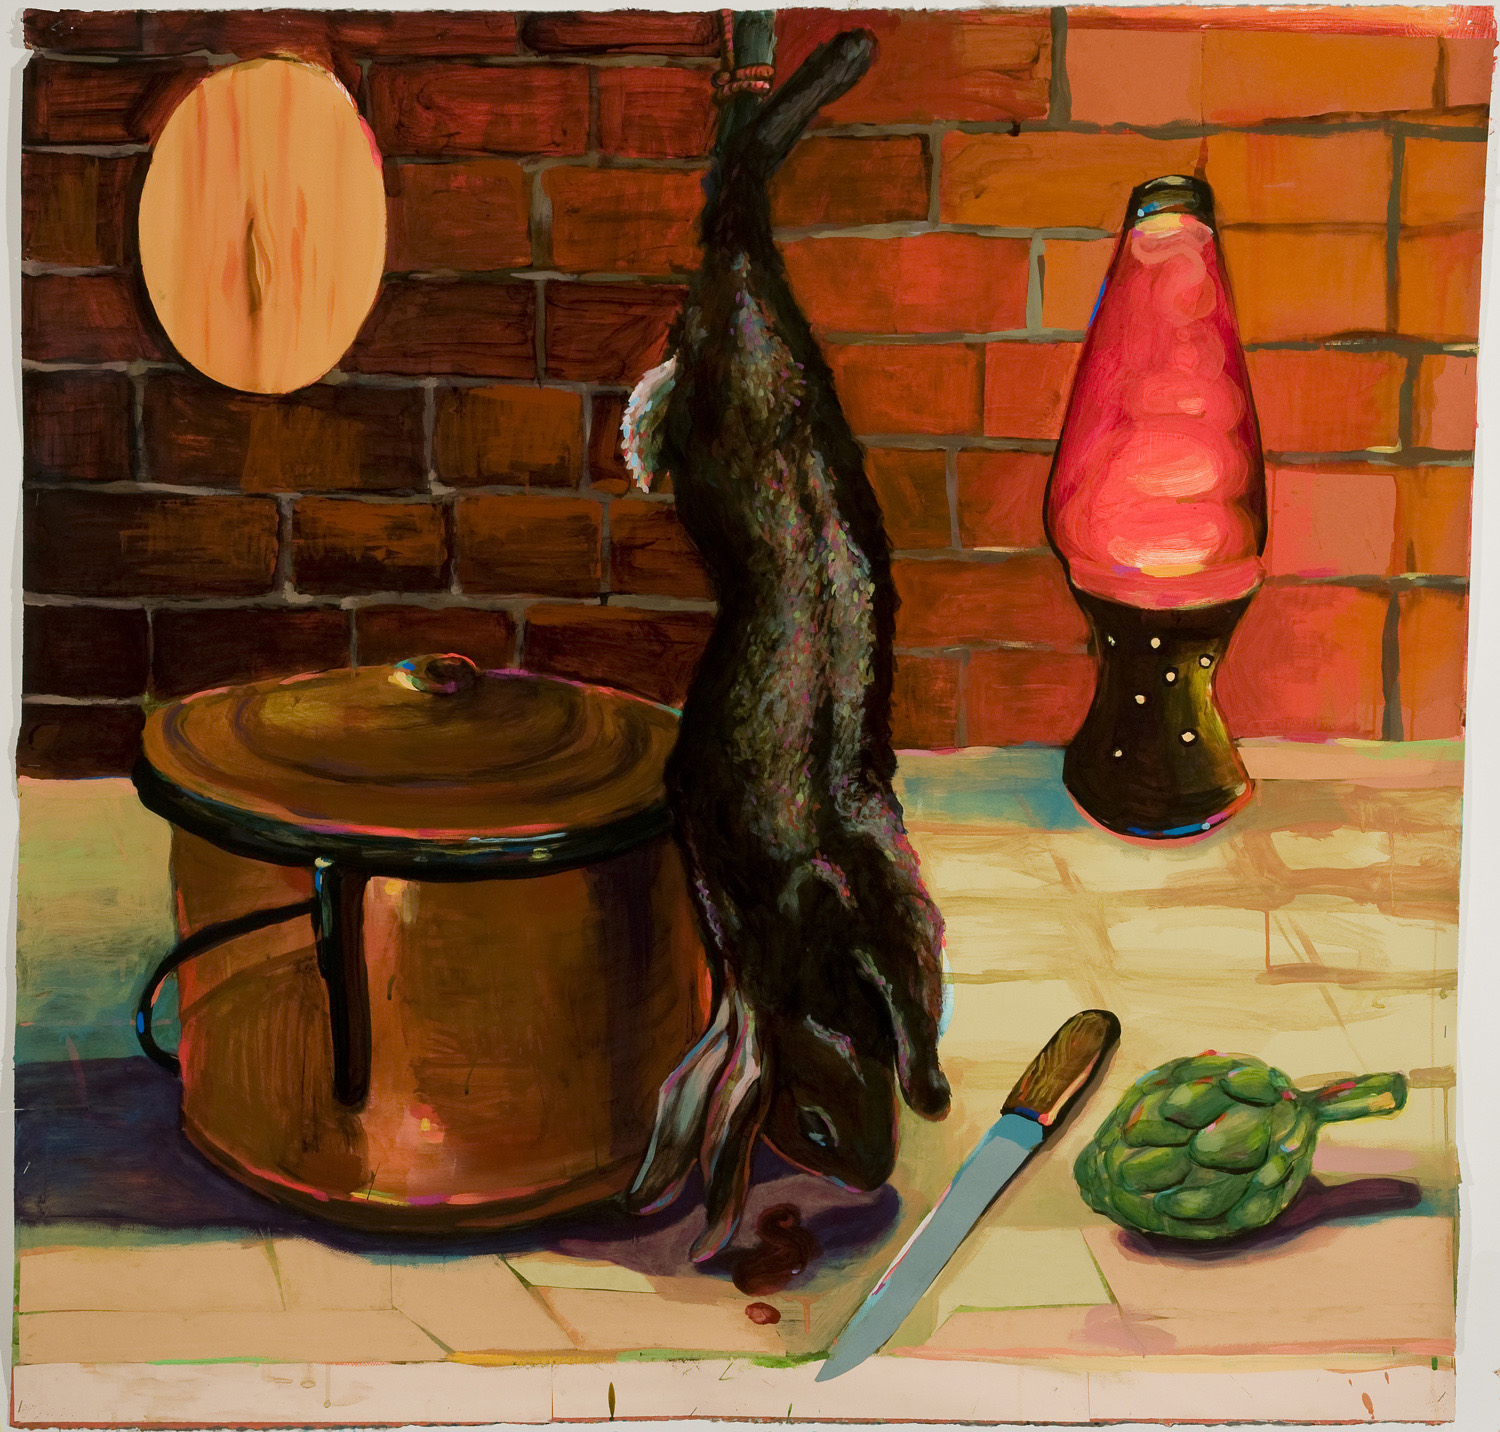 Rabbit, Copper pot, Lava Lamp , 2011  acrylic, ink, collage on paper  53 x 53 inches